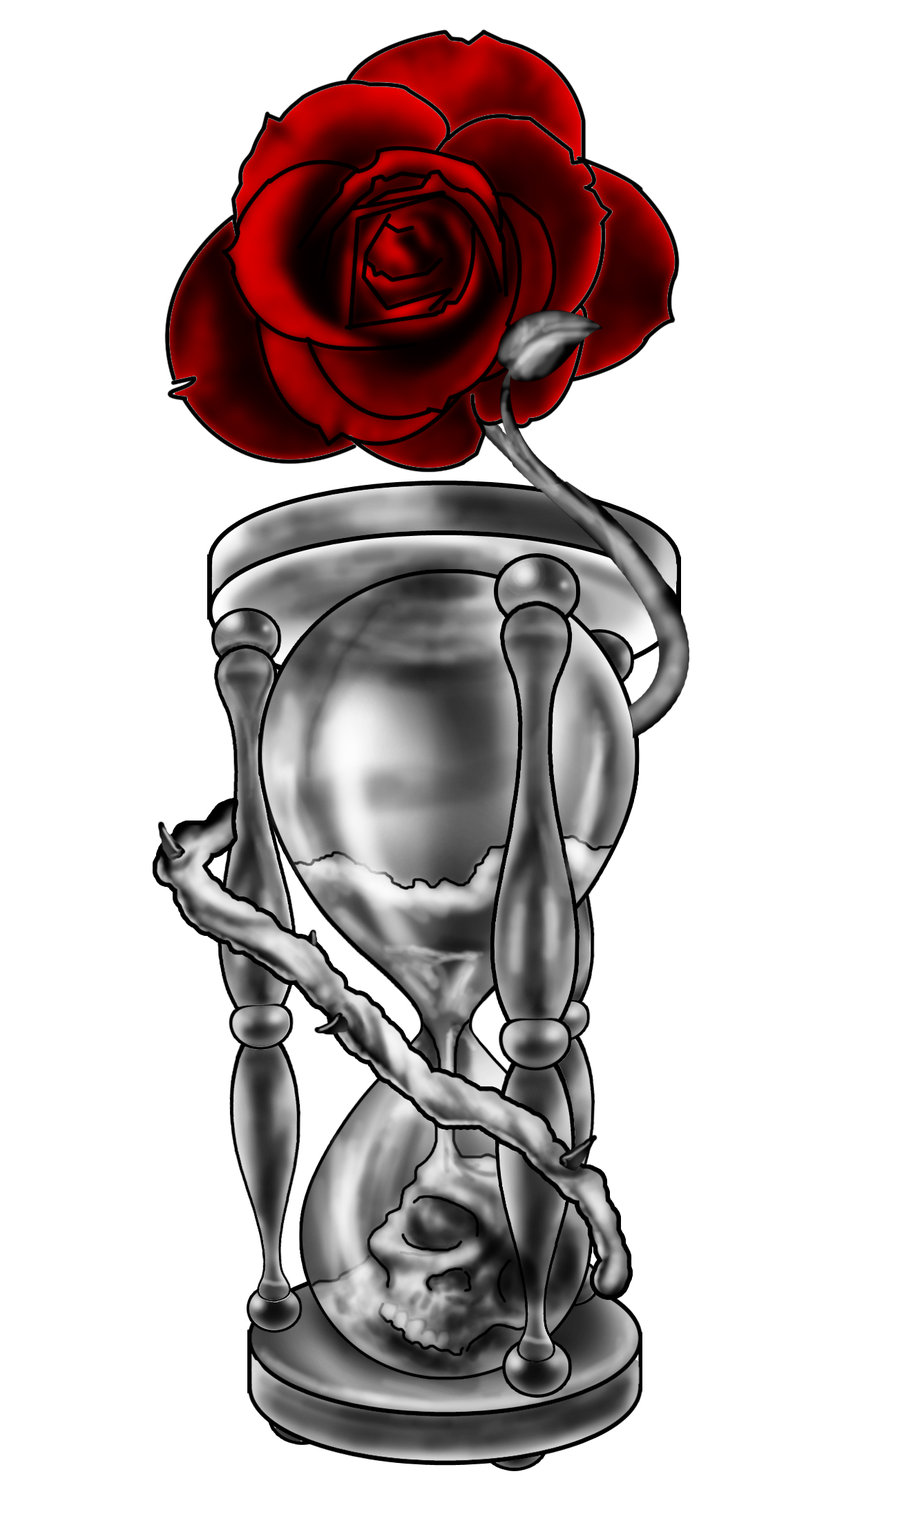 Roses Hour Glasses Tattoo: Black And Grey 3D Hourglass Tattoo On Forearm By Remistattoo